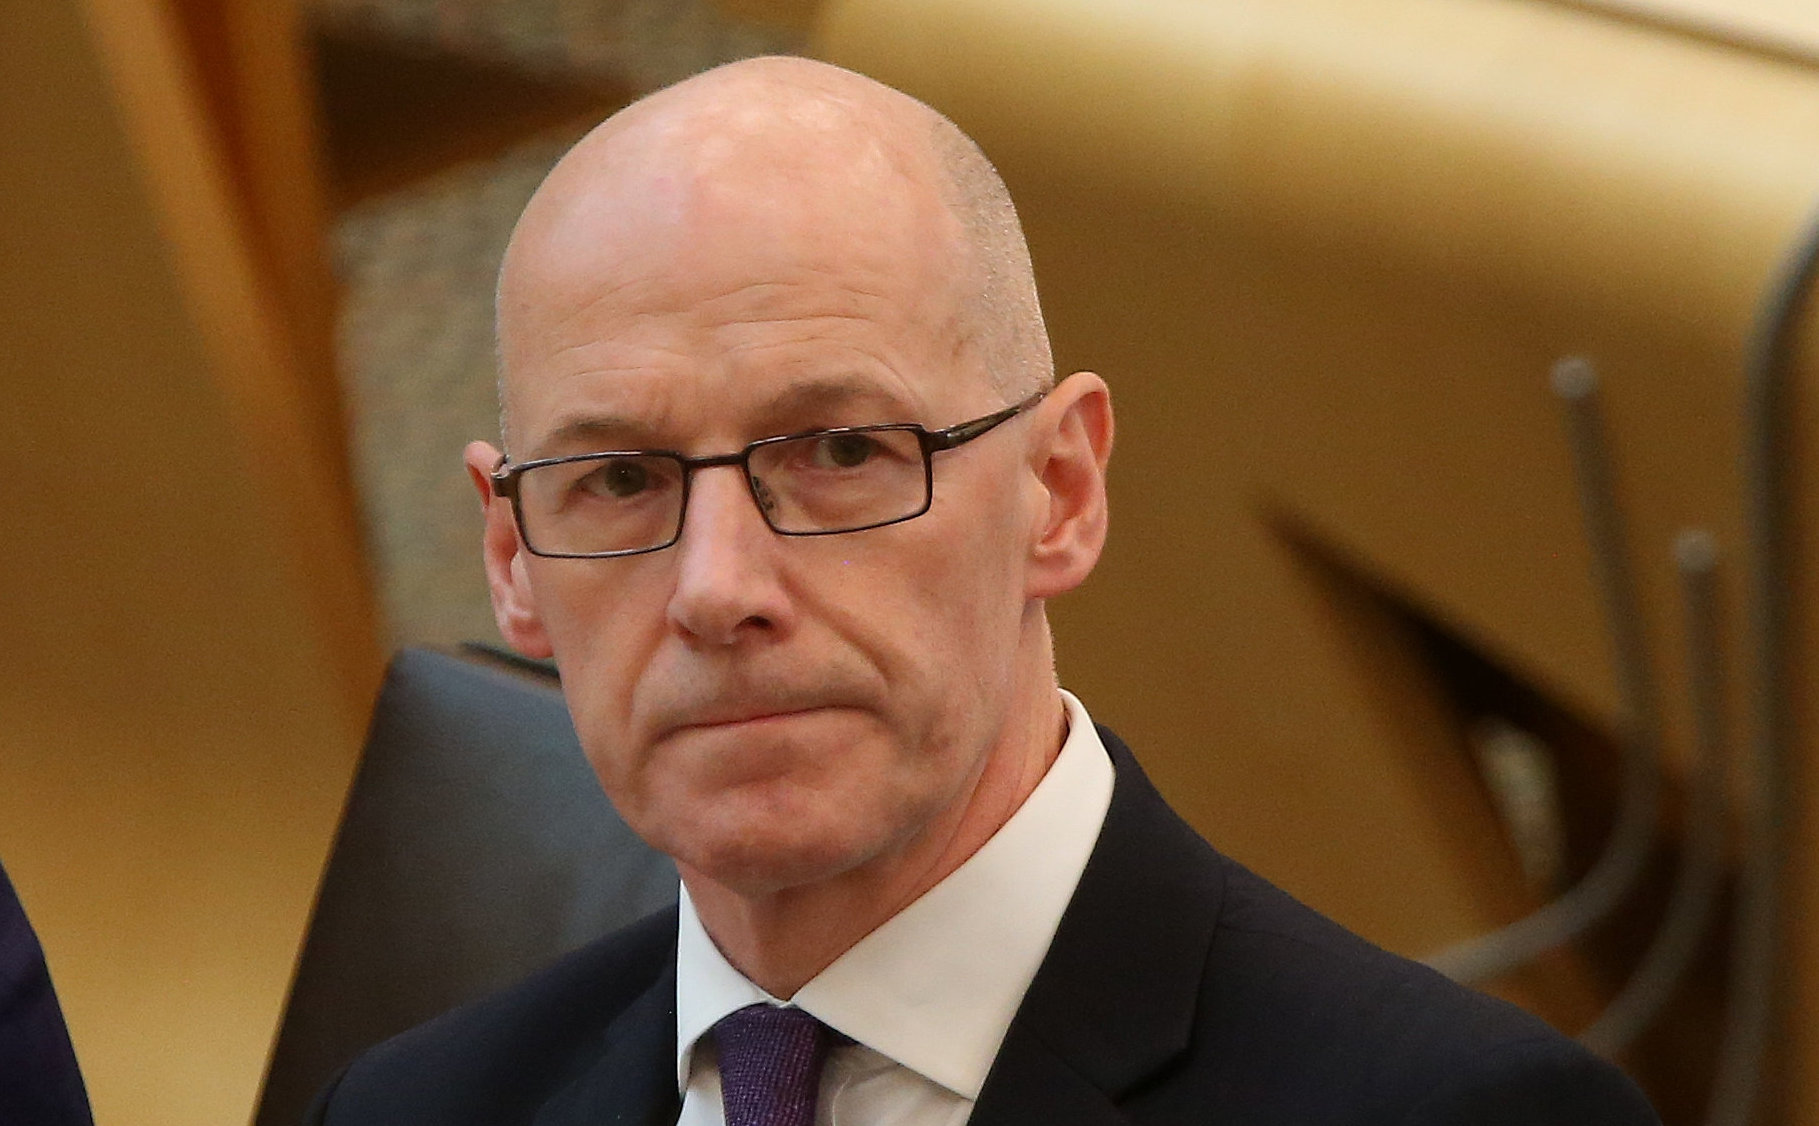 John Swinney believes some councils did not 'recognise the value' of teaching music